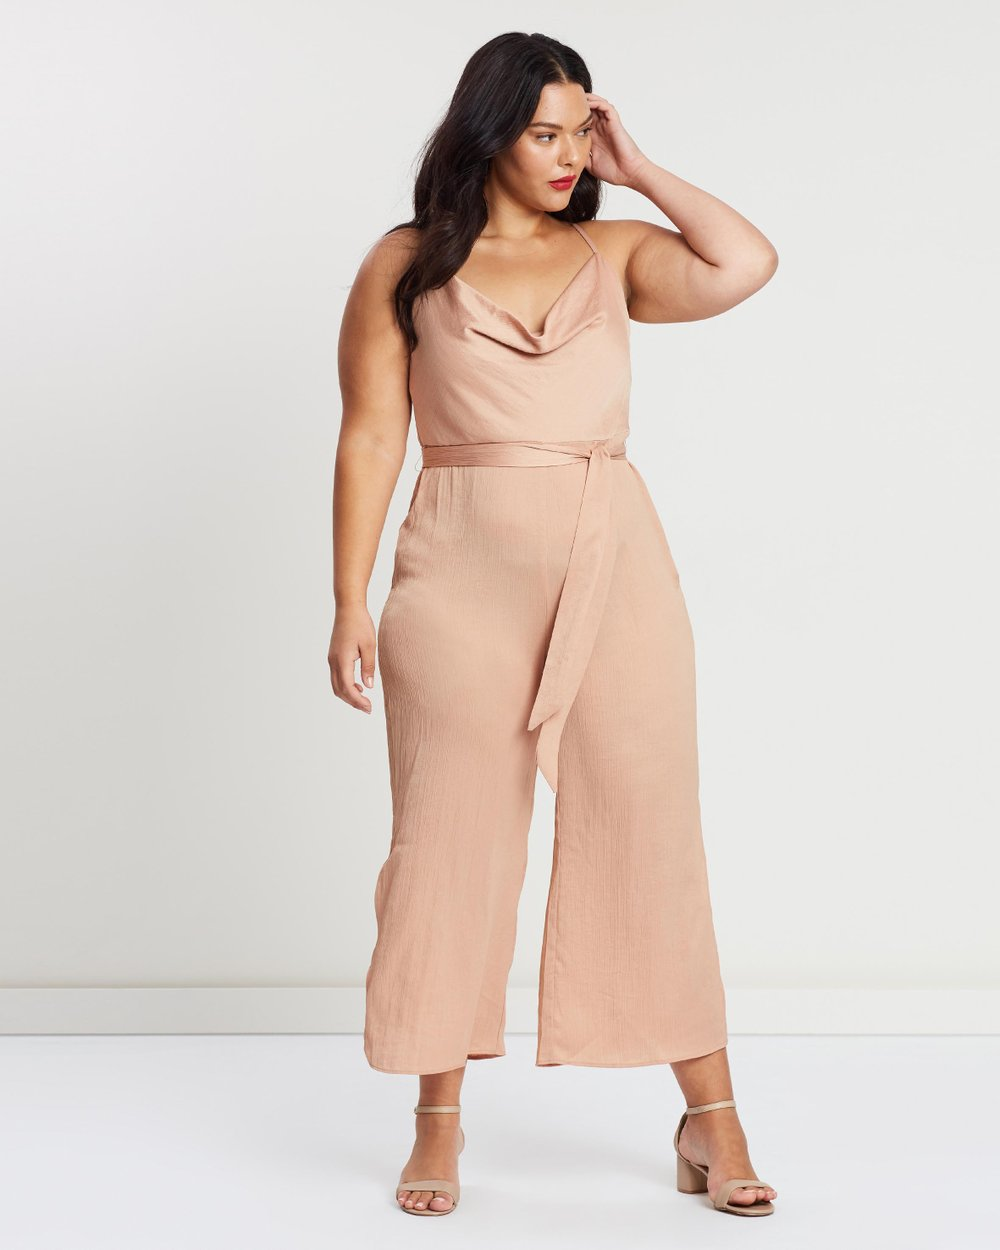 d62300322ed7 ICONIC EXCLUSIVE - Ollie Jumpsuit by Atmos Here Curvy Online